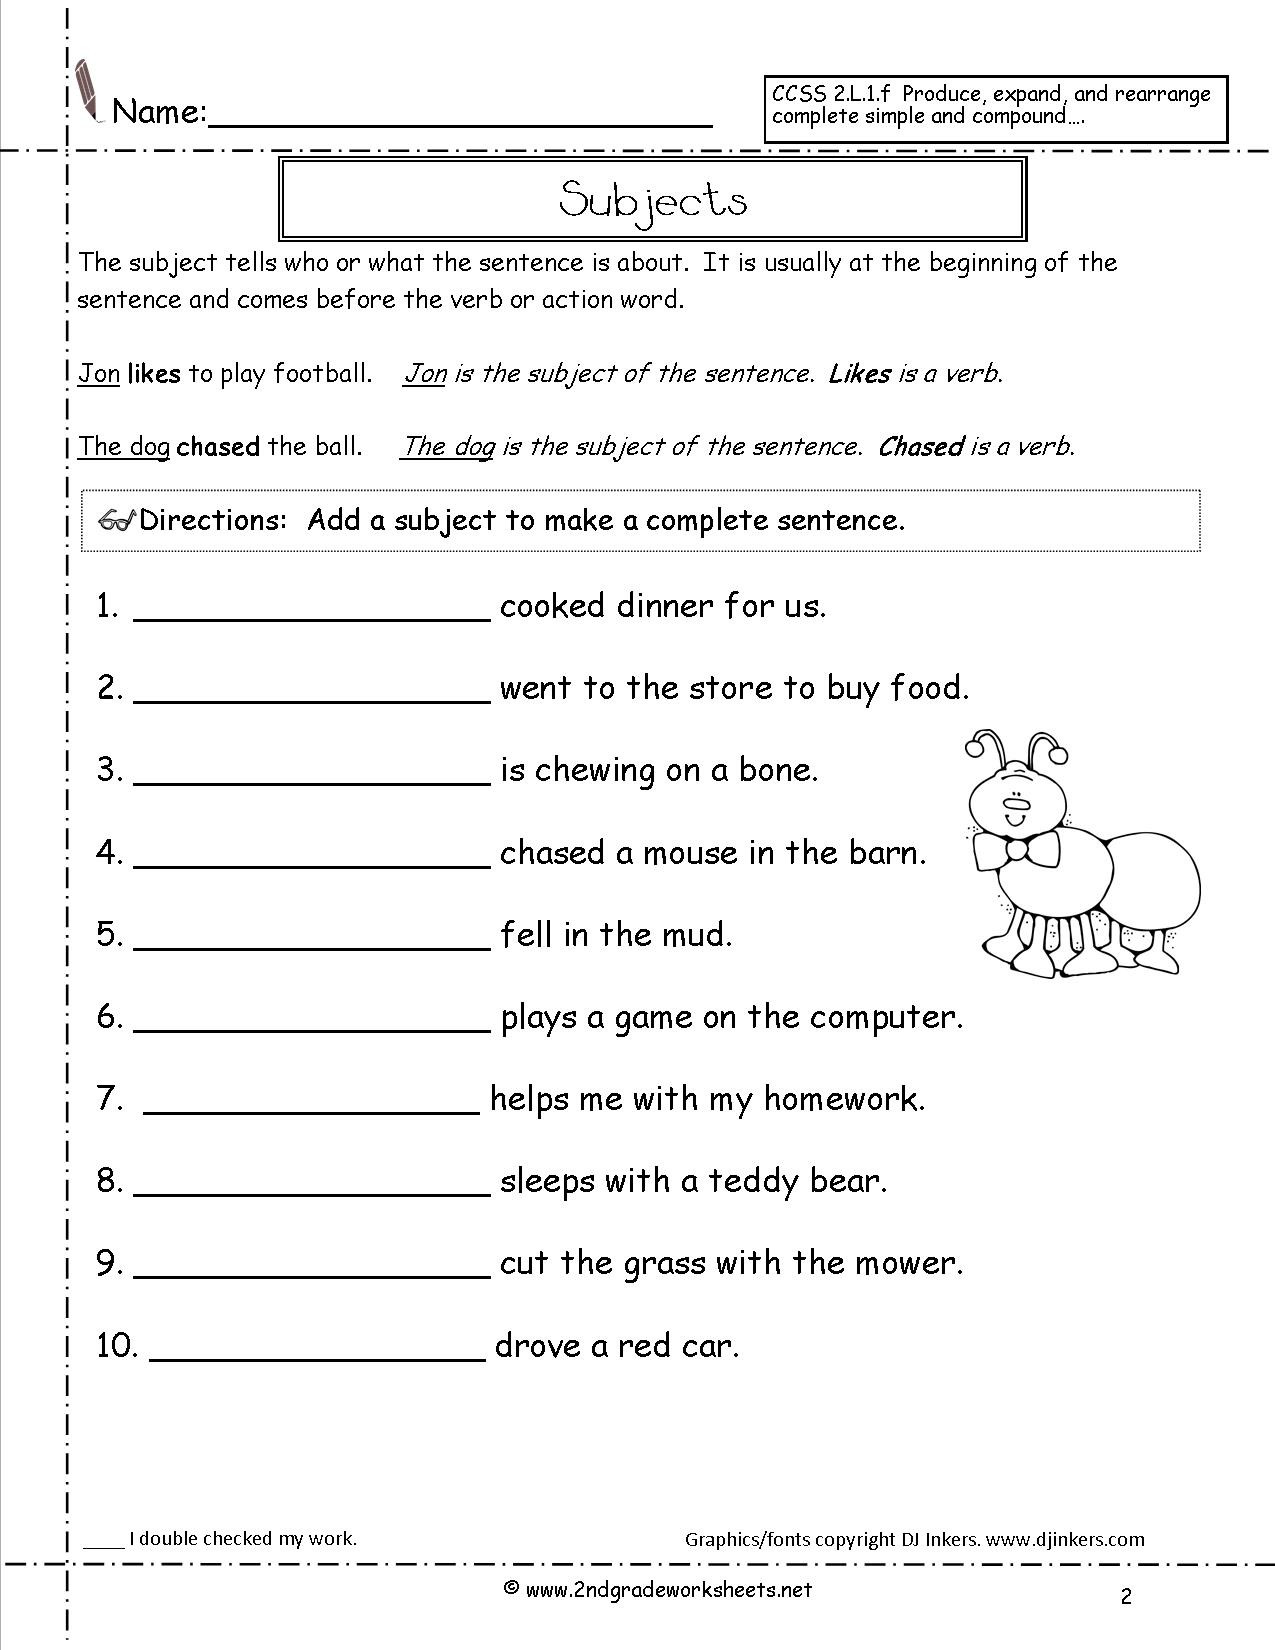 Editing Worksheets 3rd Grade Basic Math Words Printable Cursive Worksheets 3rd Grade